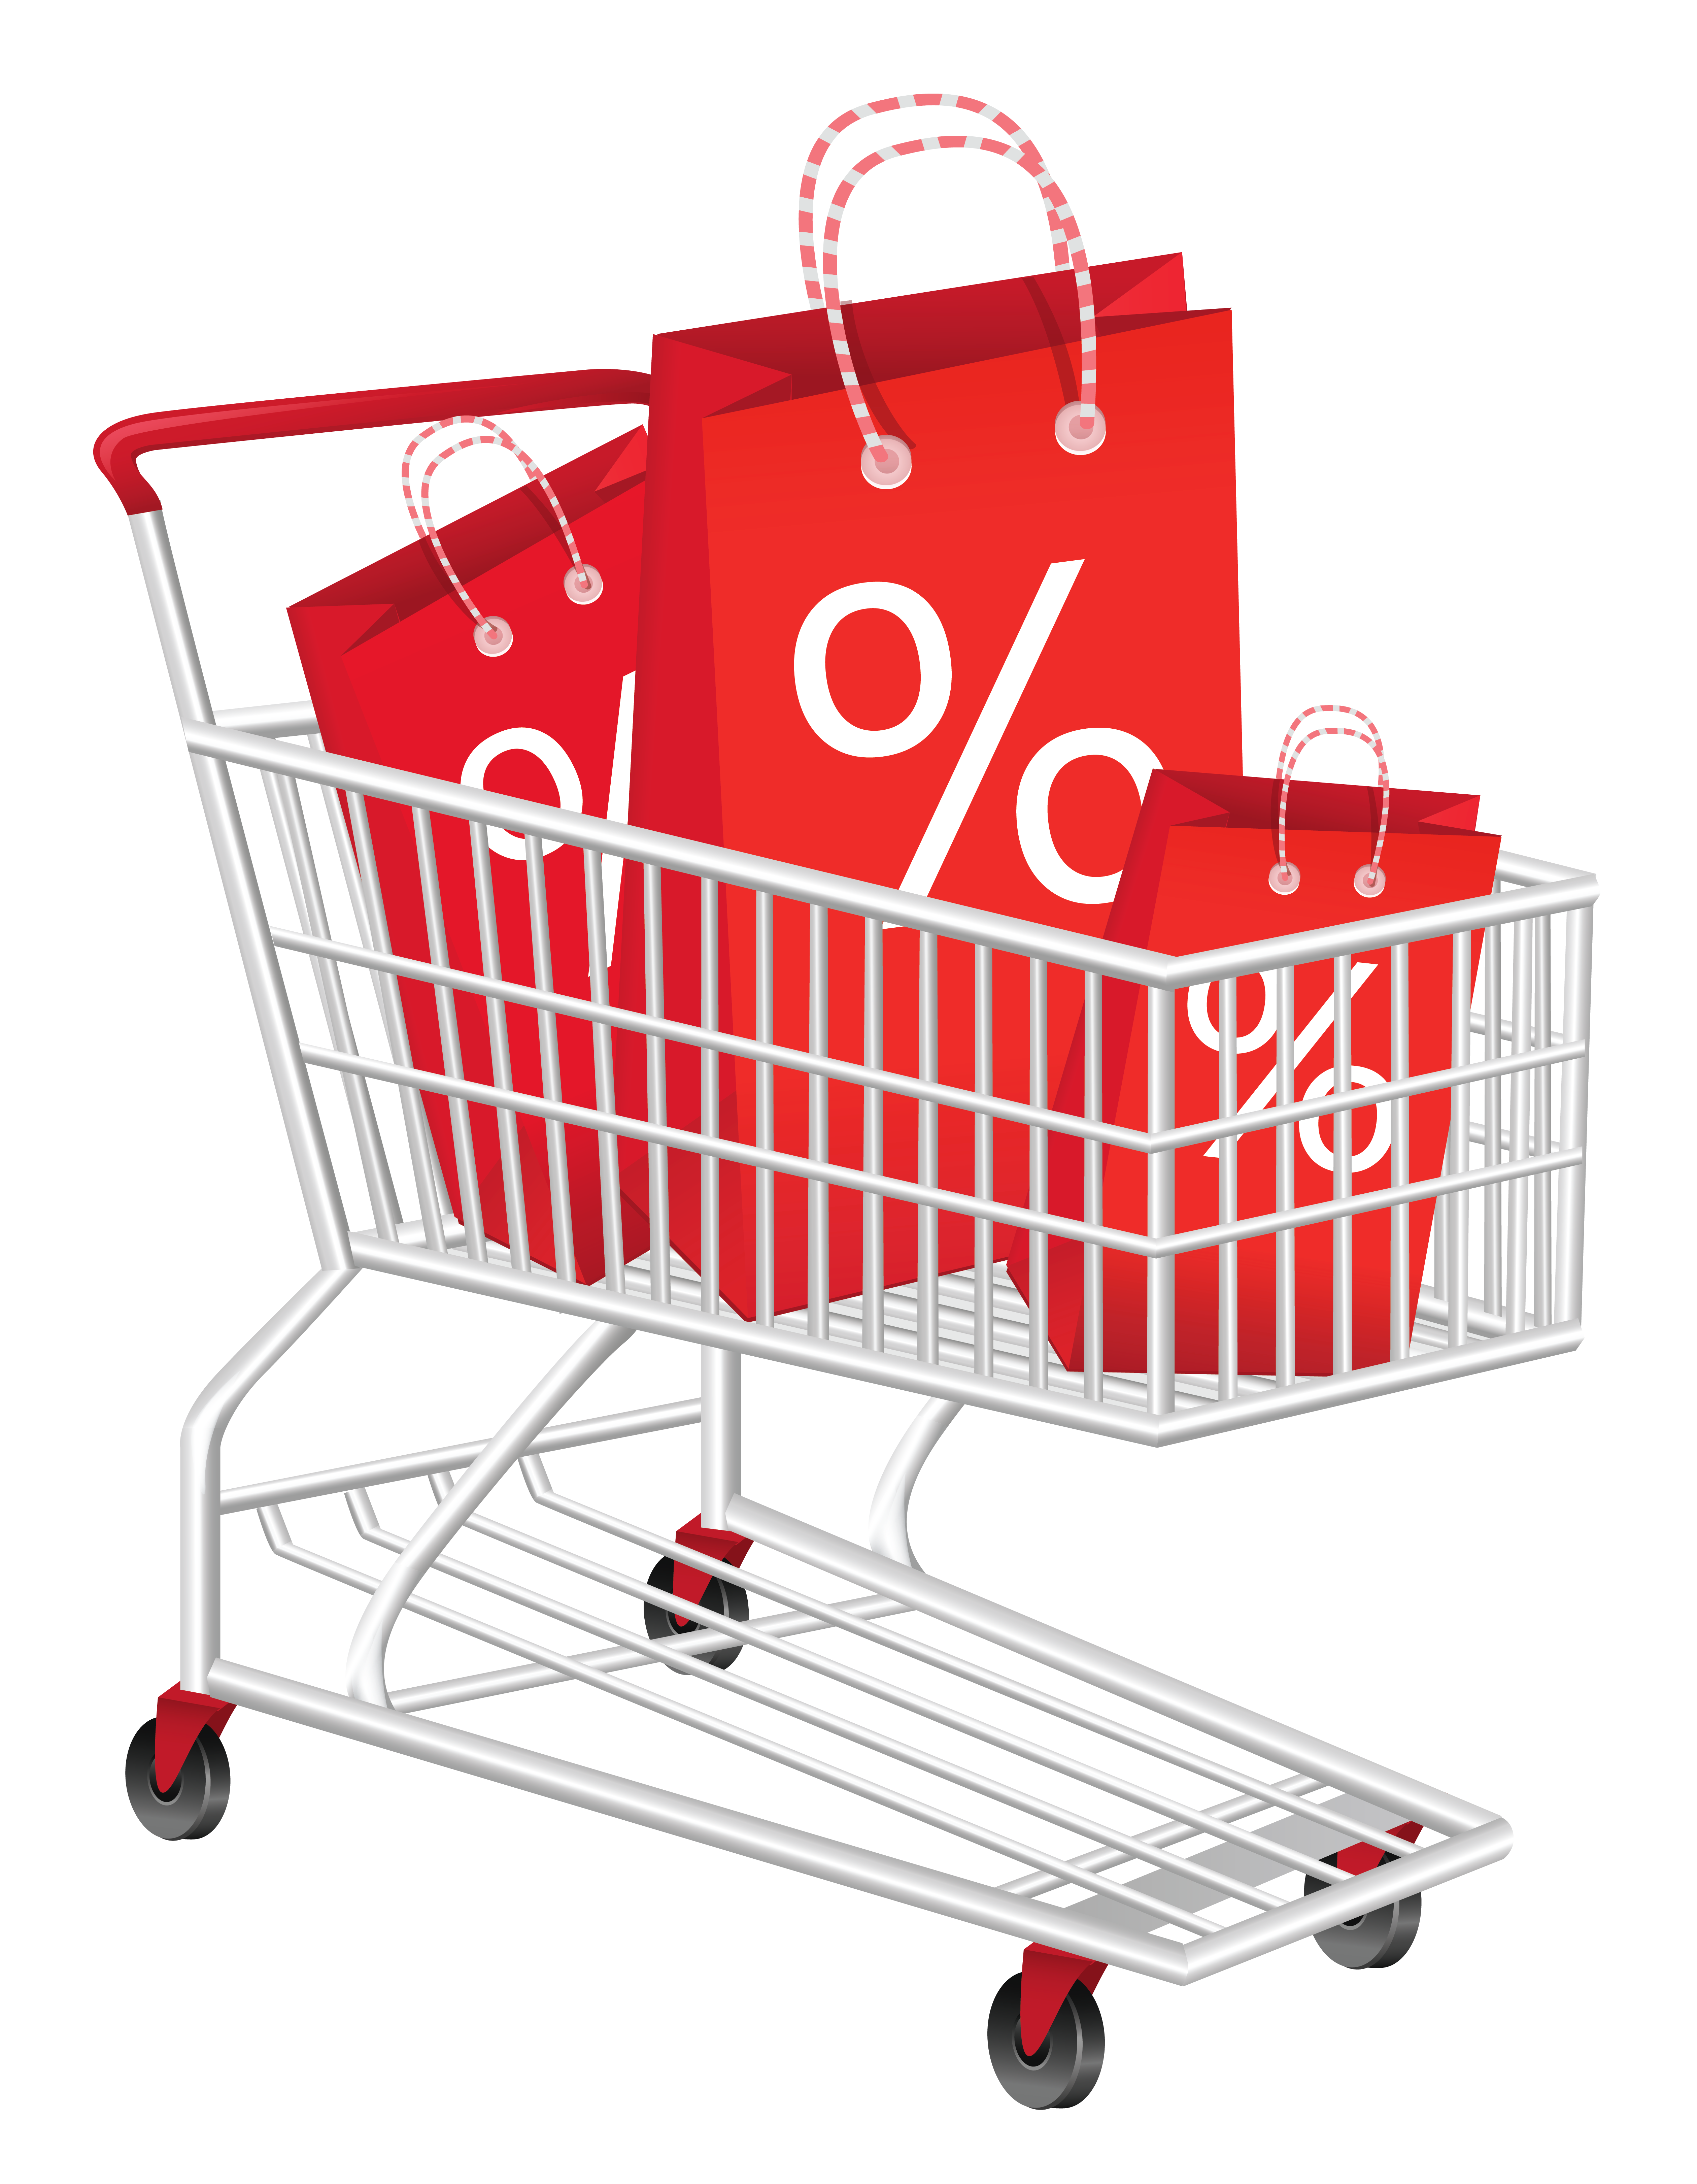 Money cart clipart picture black and white 28+ Collection of Full Shopping Cart Clipart | High quality, free ... picture black and white